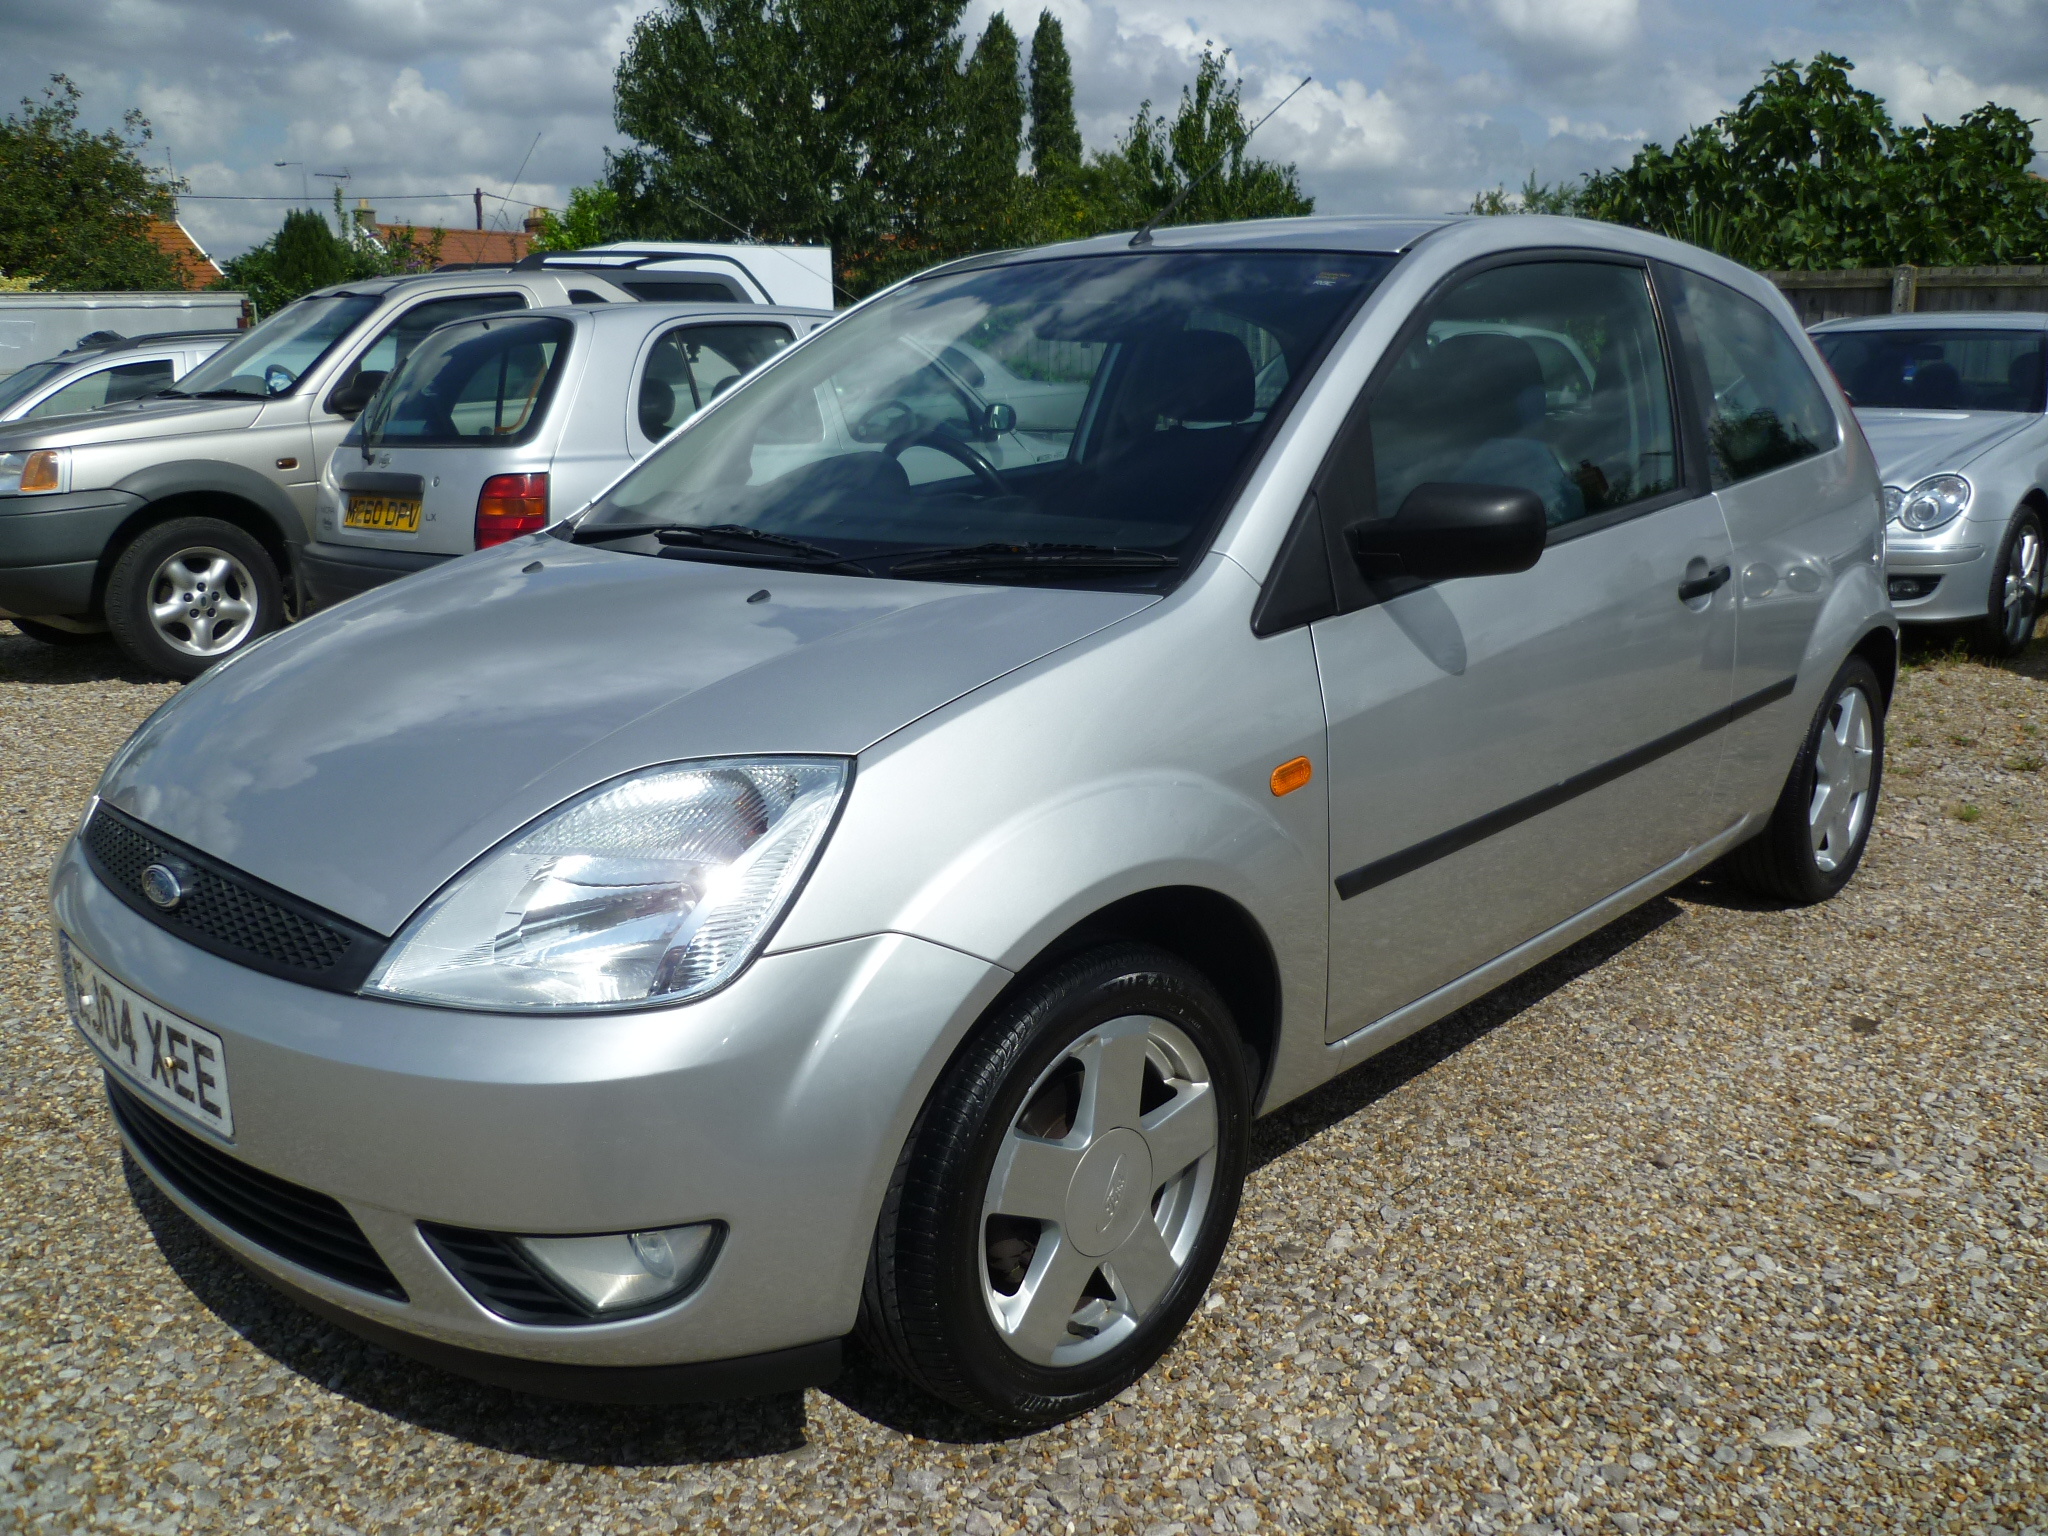 Ford Fiesta 1.4 3Dr Flame edition 003